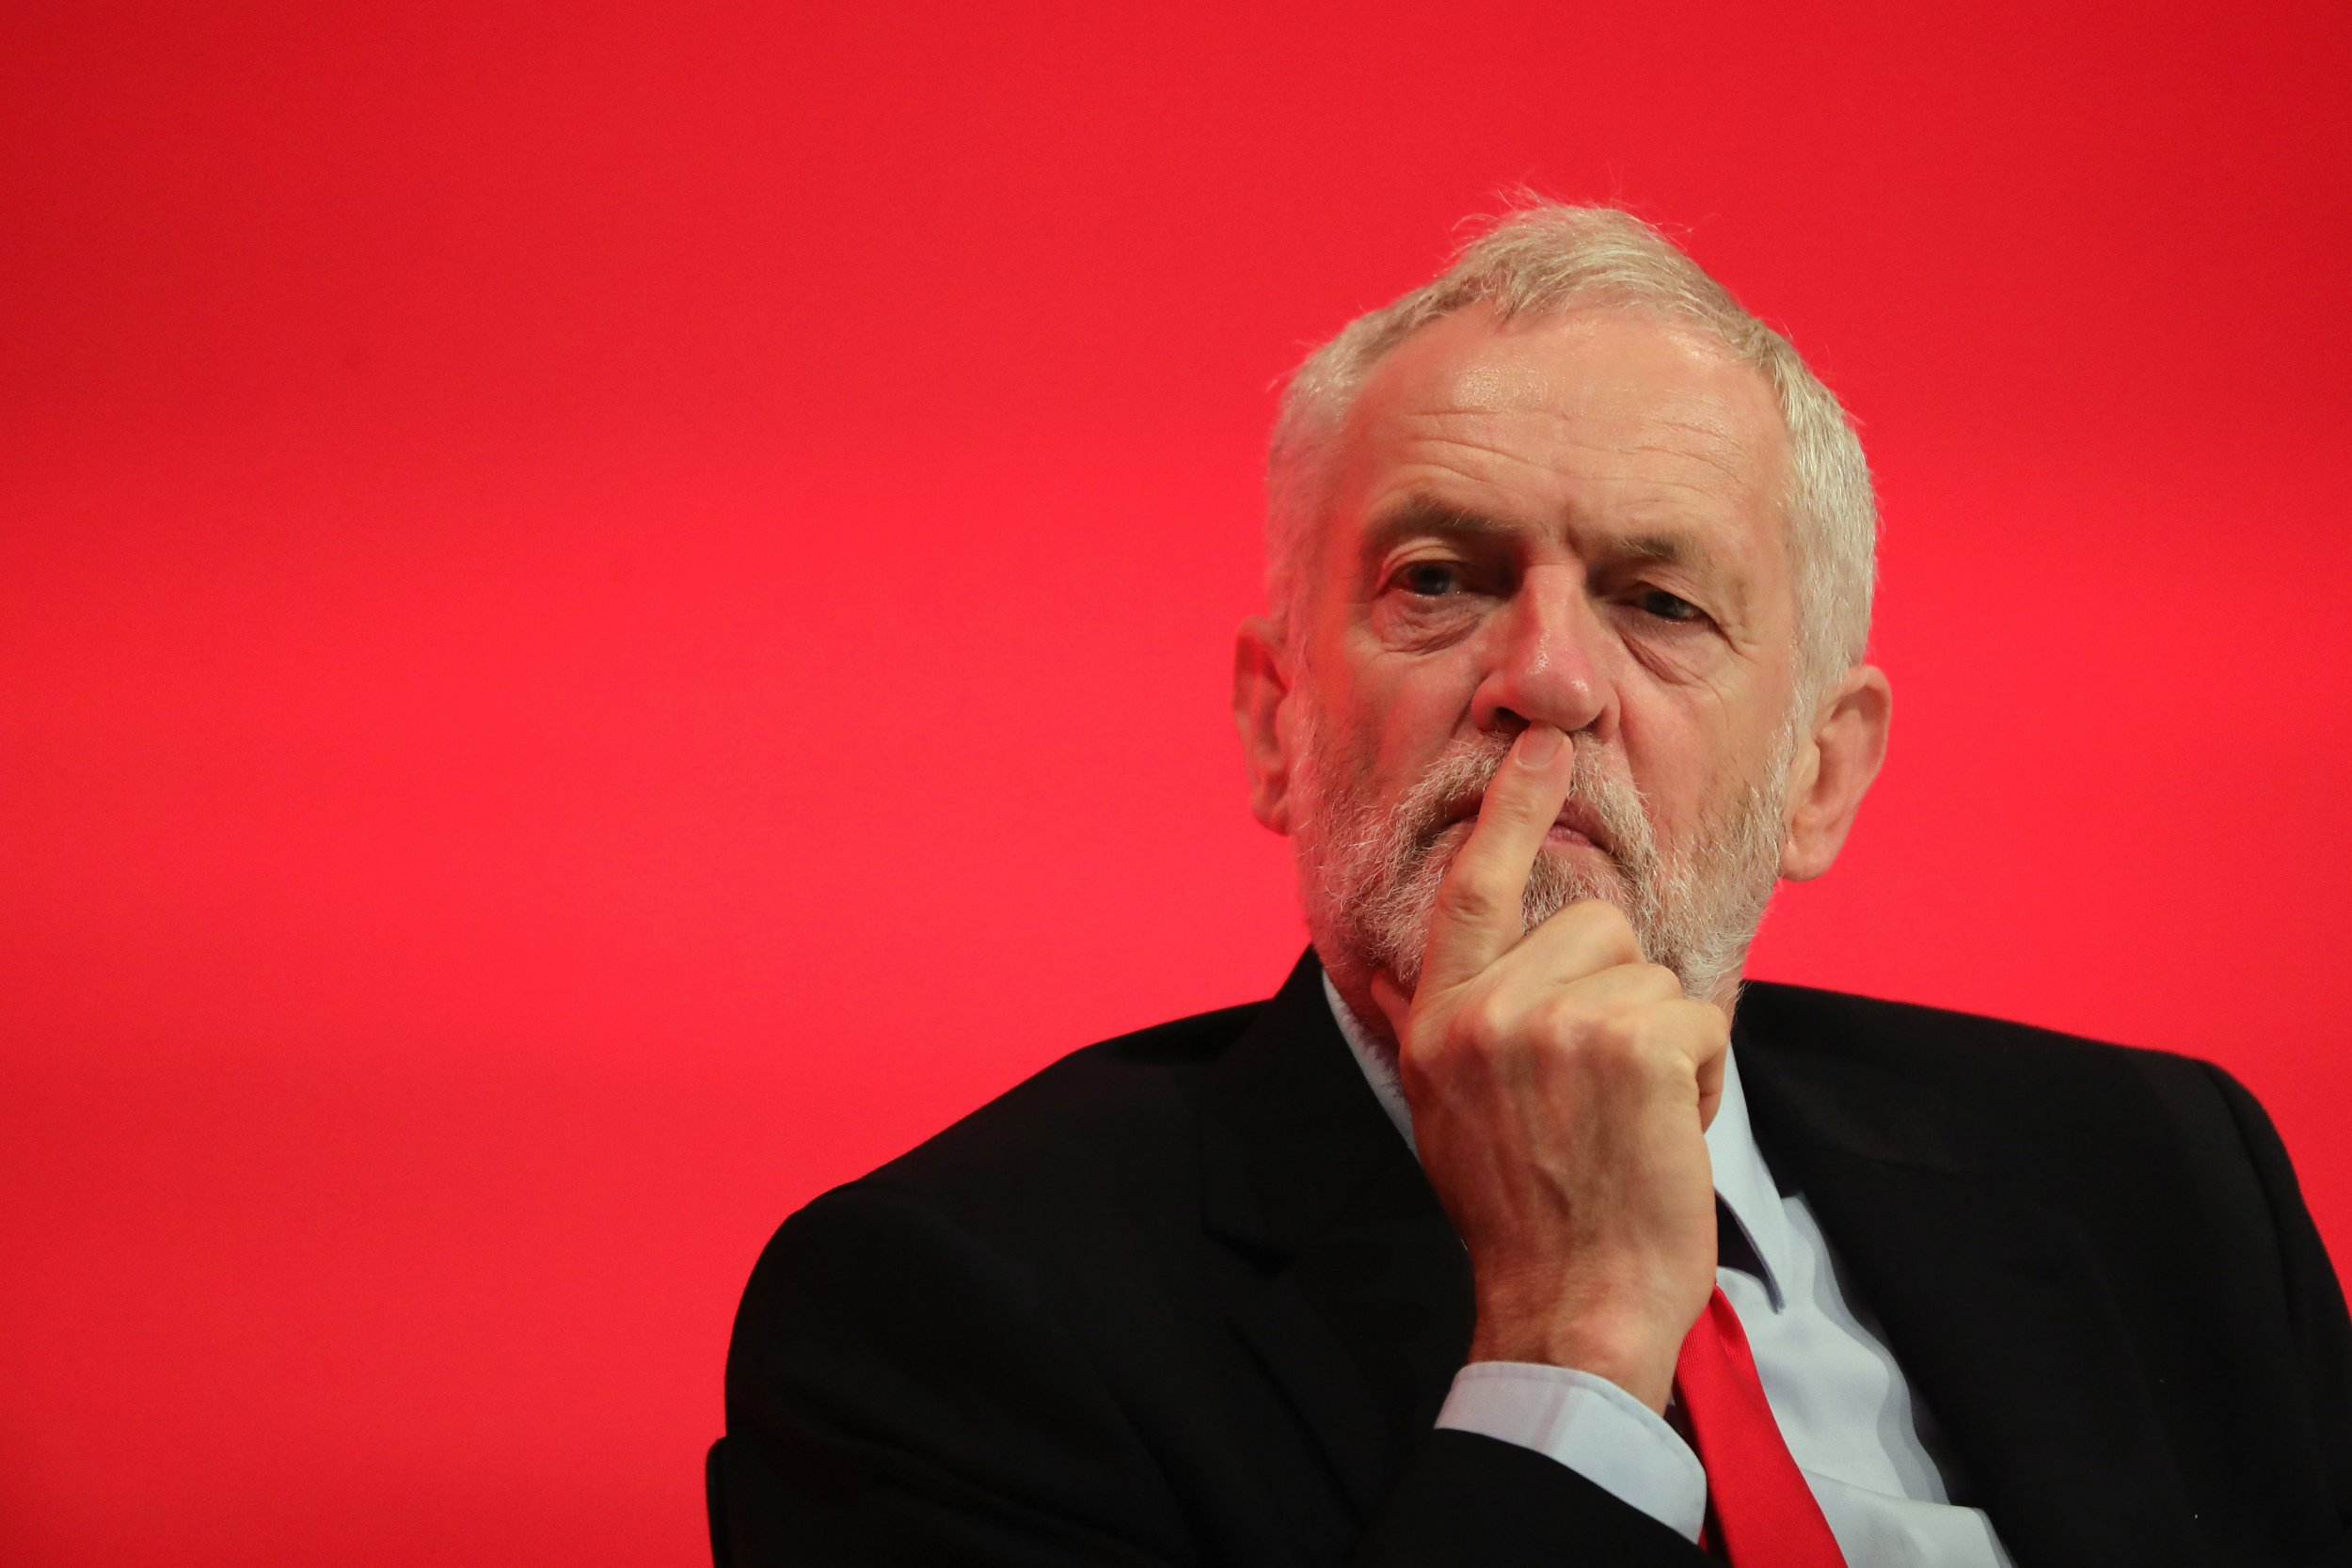 Where's the mass outrage over Jeremy Corbyn's anti-Semitism?